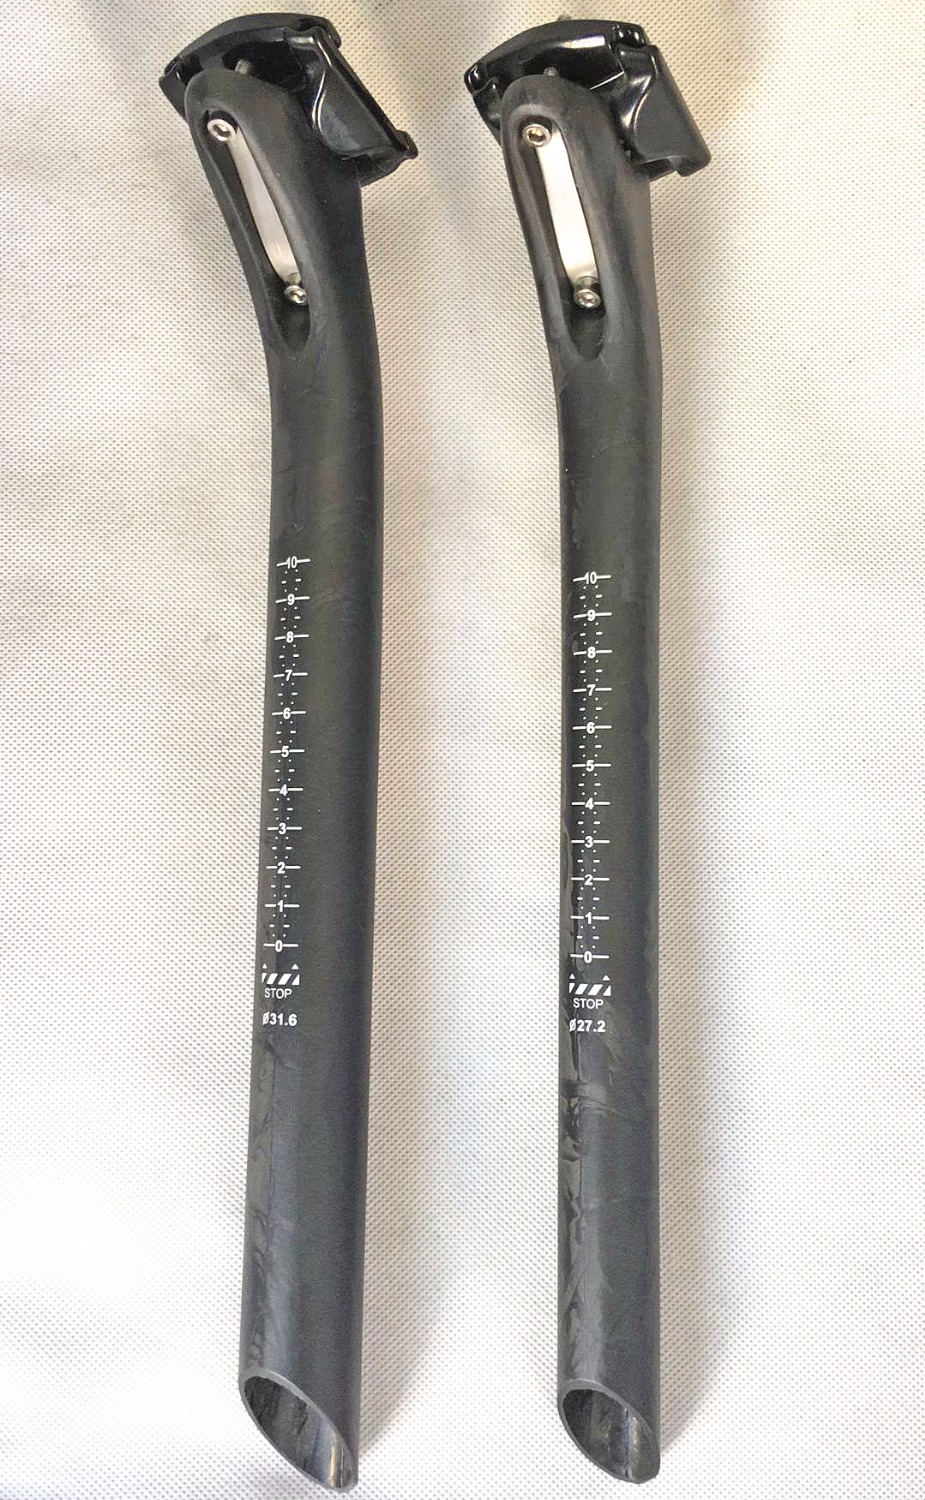 Newest Mountain Bike Carbon Seatpost Full Carbon Fibre Bicycle Seatposts Road MTB Parts 27 2 31